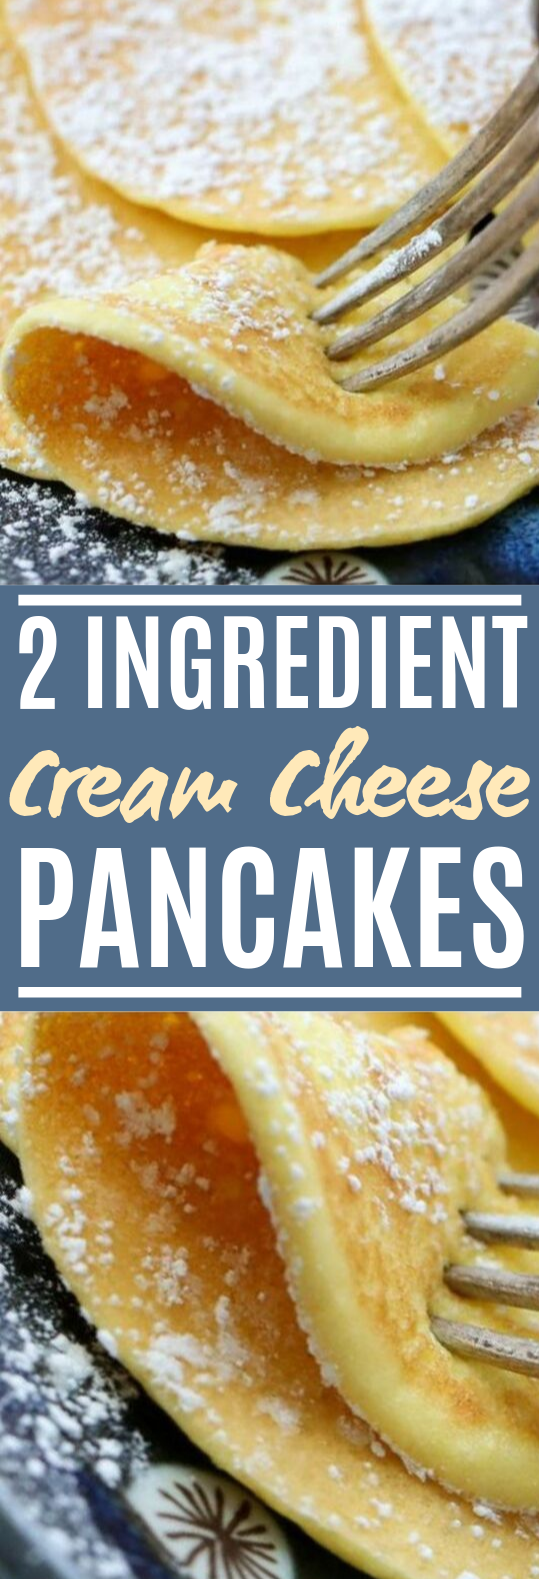 2-Ingredient Cream Cheese Pancakes #healthy #breakfast